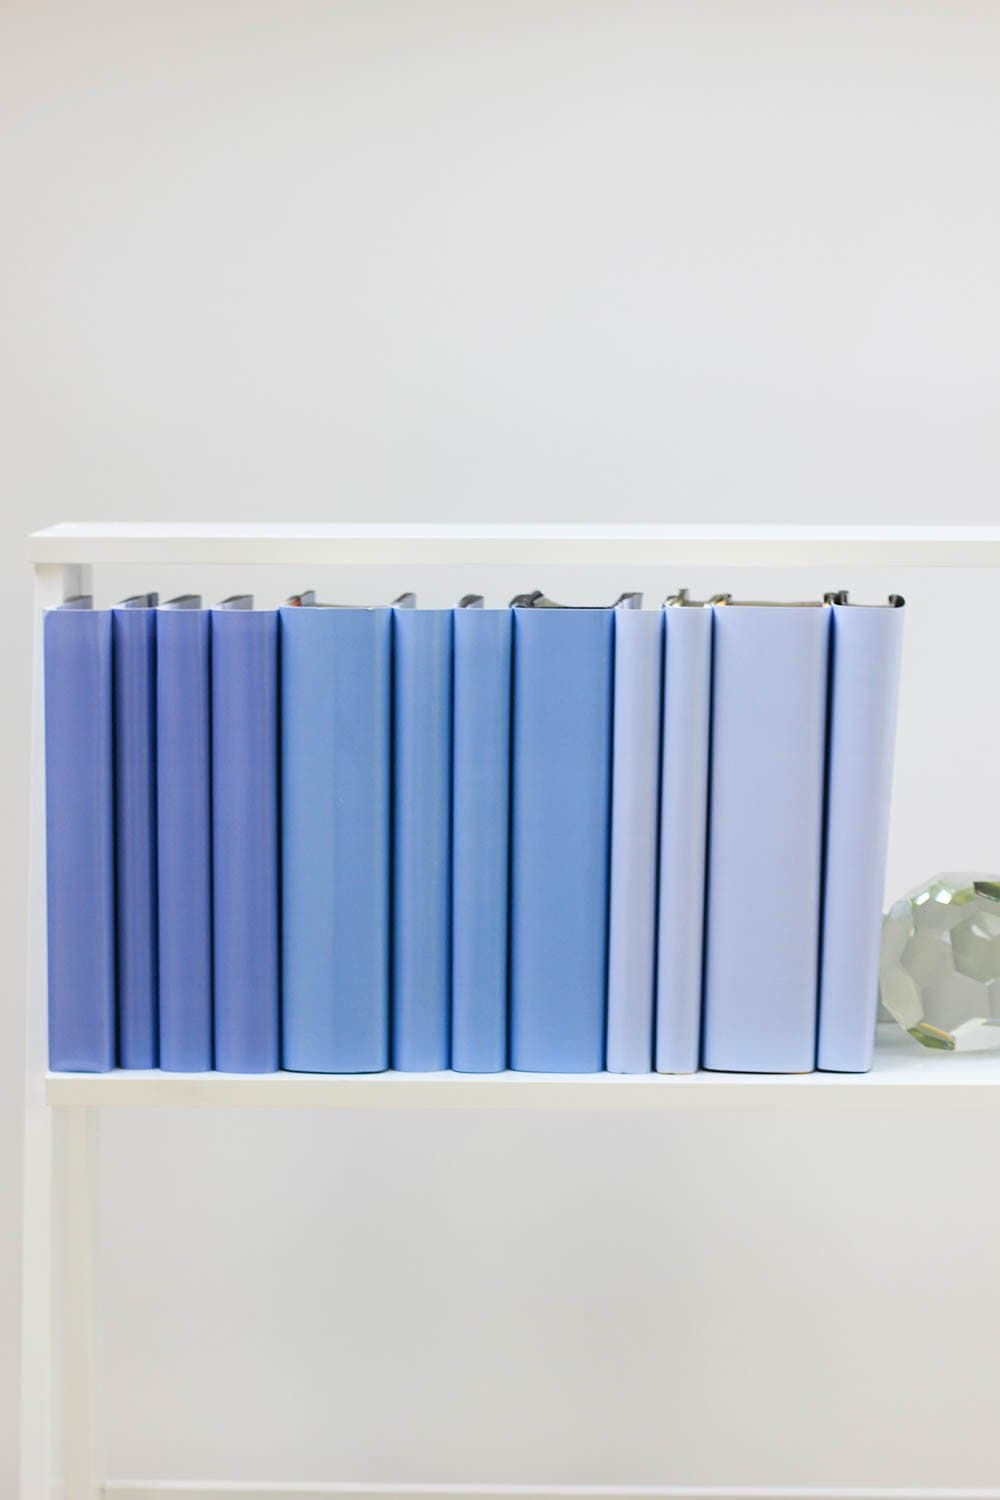 Set of styled periwinkle books made with periwinkle book covers